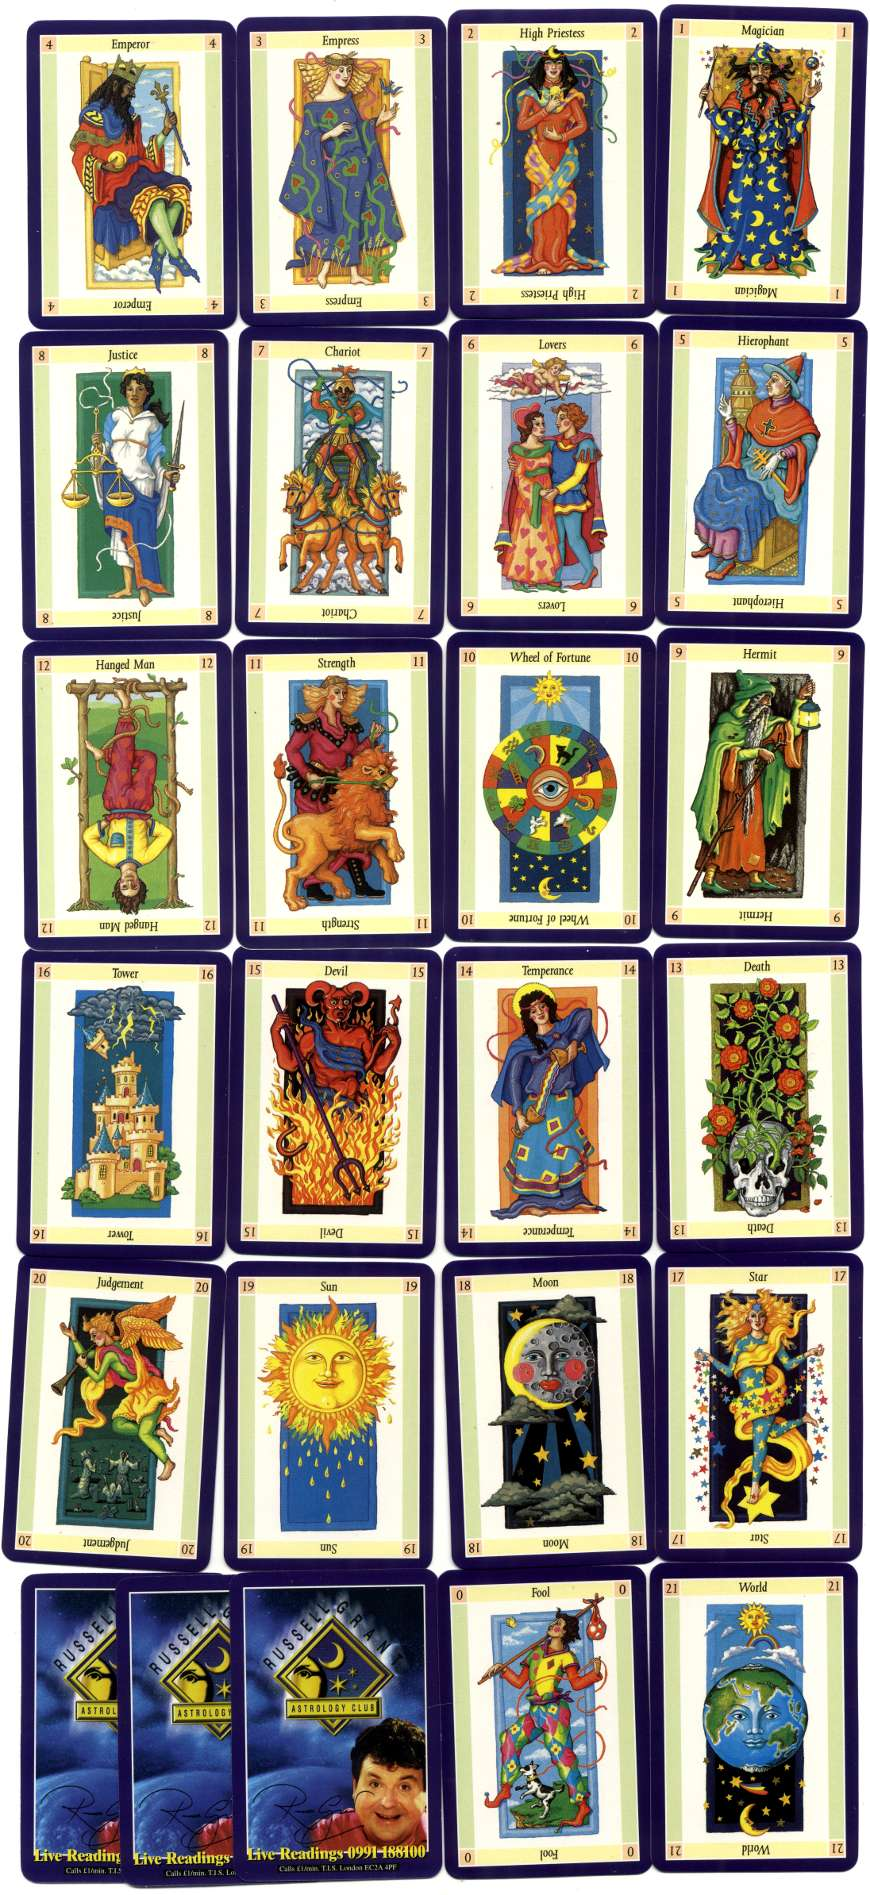 Russell Grant's Astrology Club Tarot cards